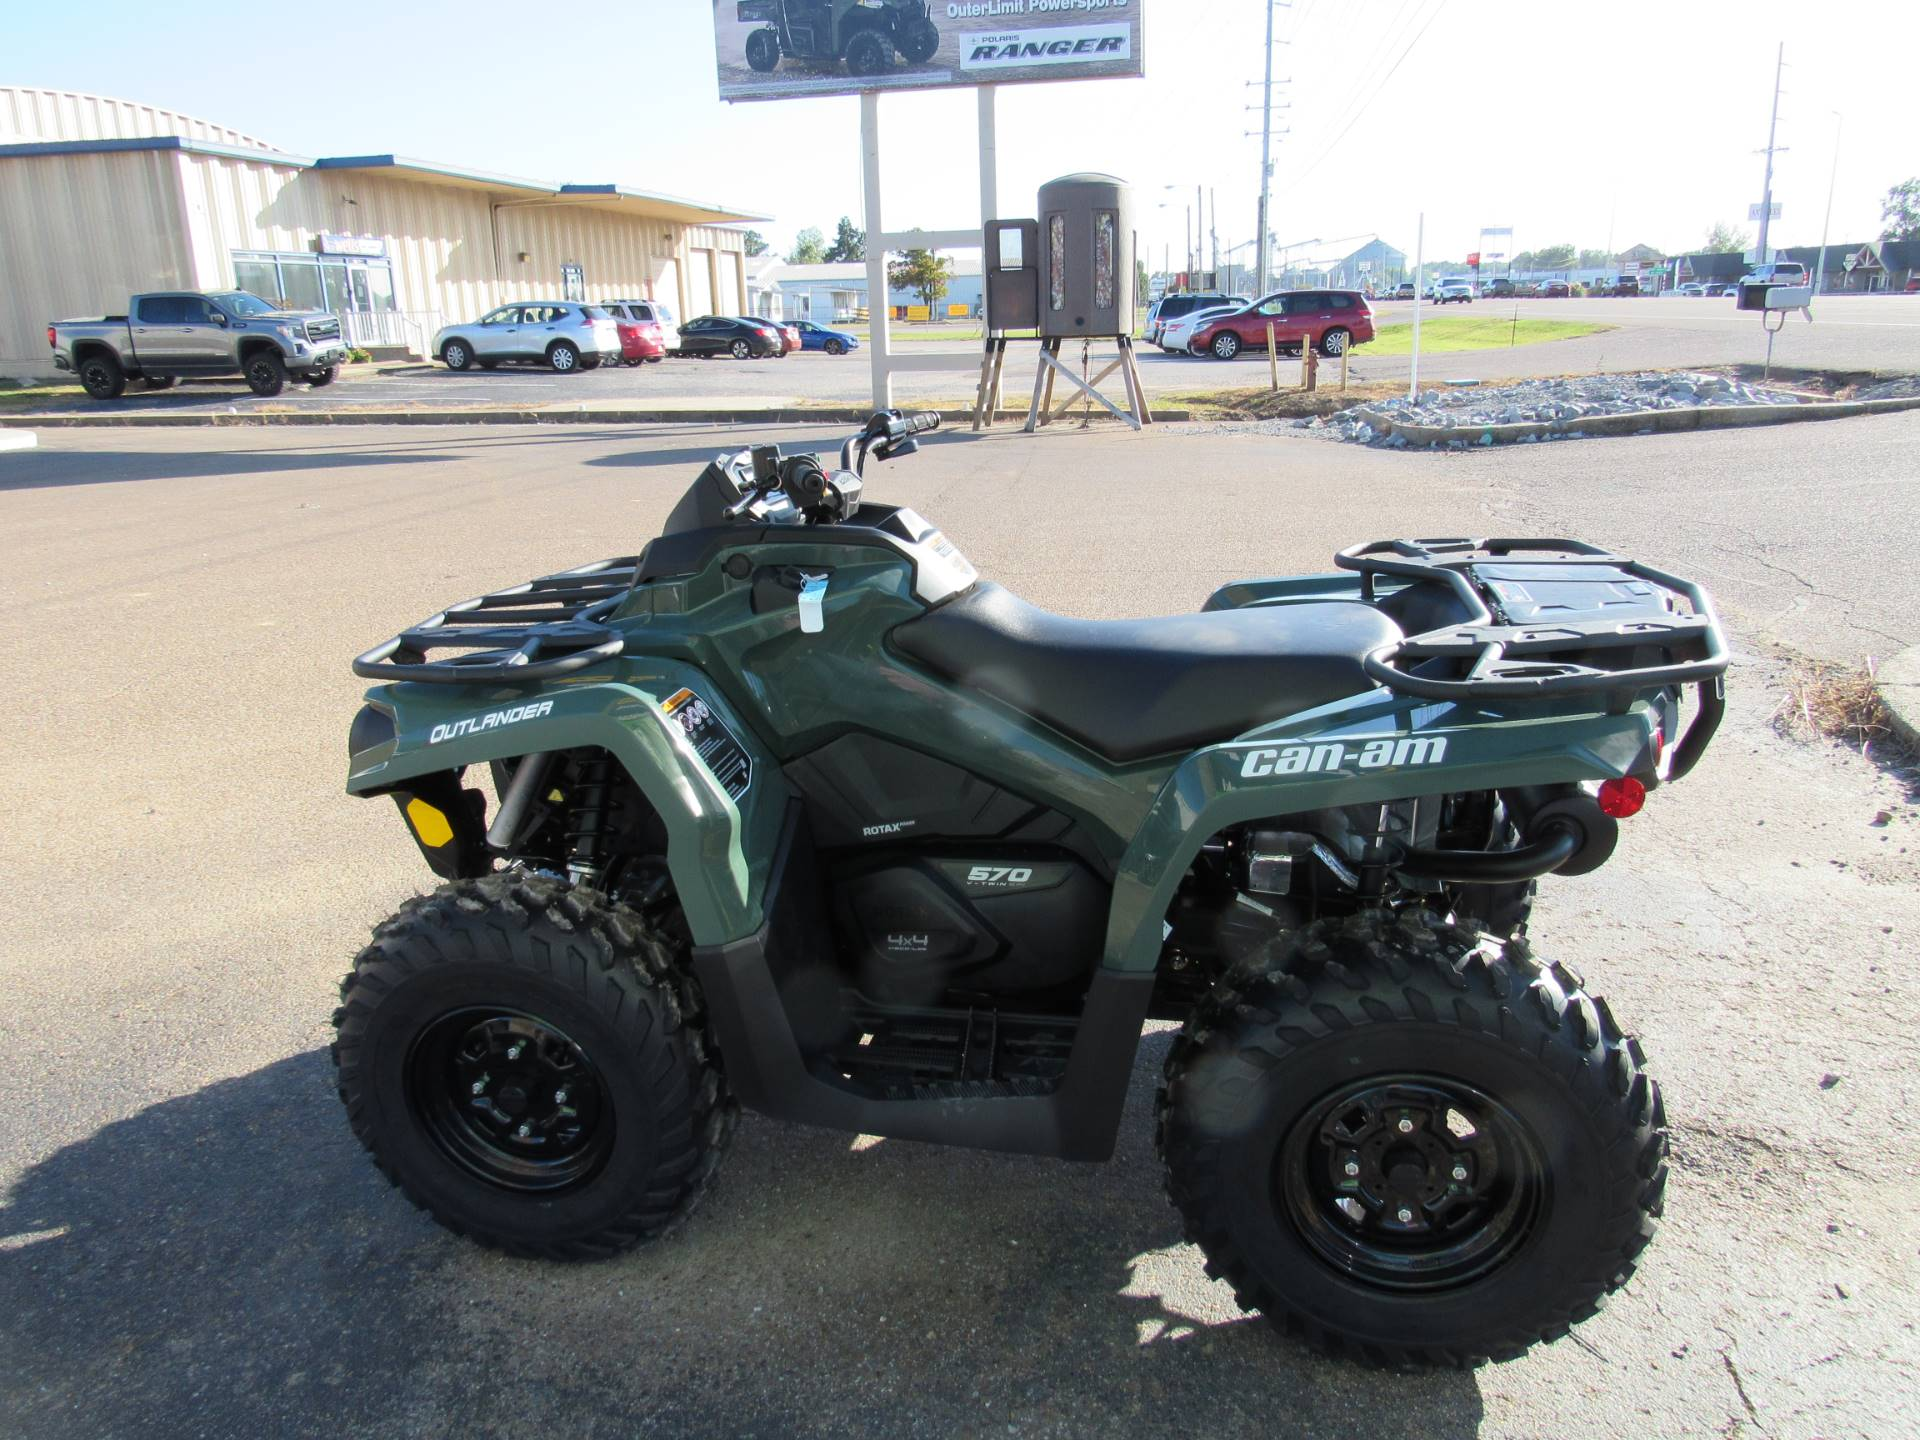 2021 Can-Am Outlander DPS 570 in Dyersburg, Tennessee - Photo 4